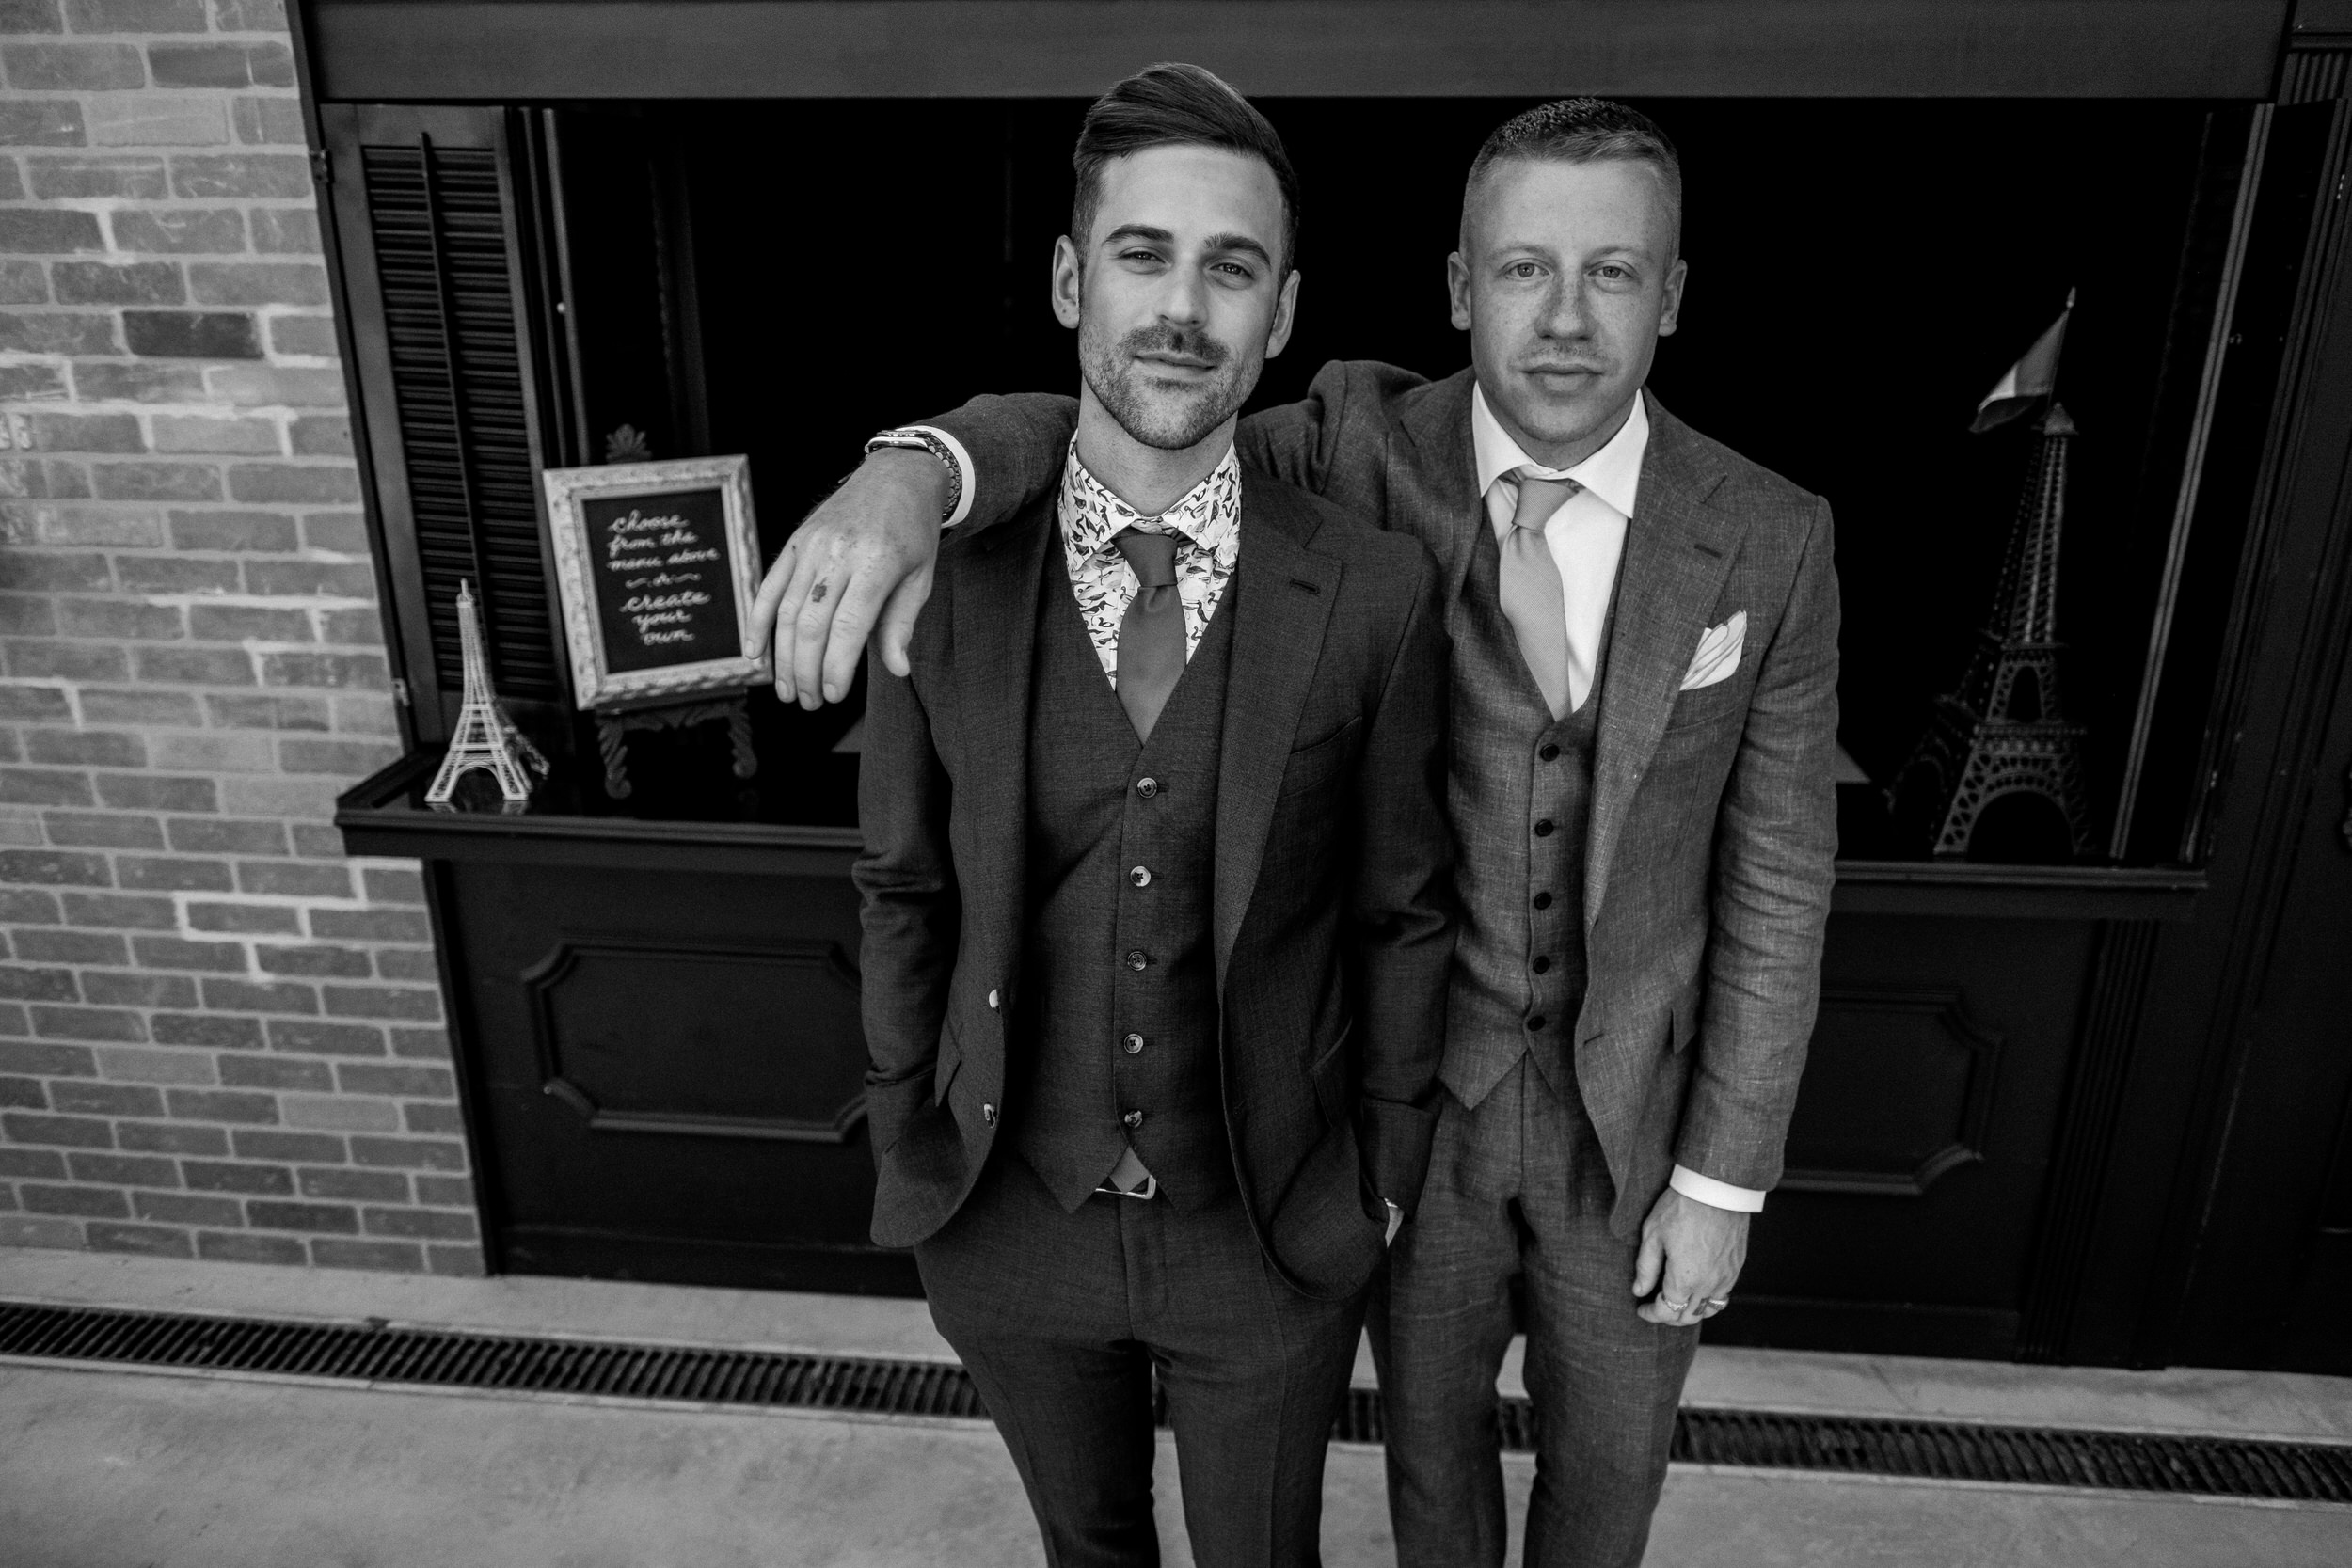 Macklemore was the best man at Ryan lewis' wedding